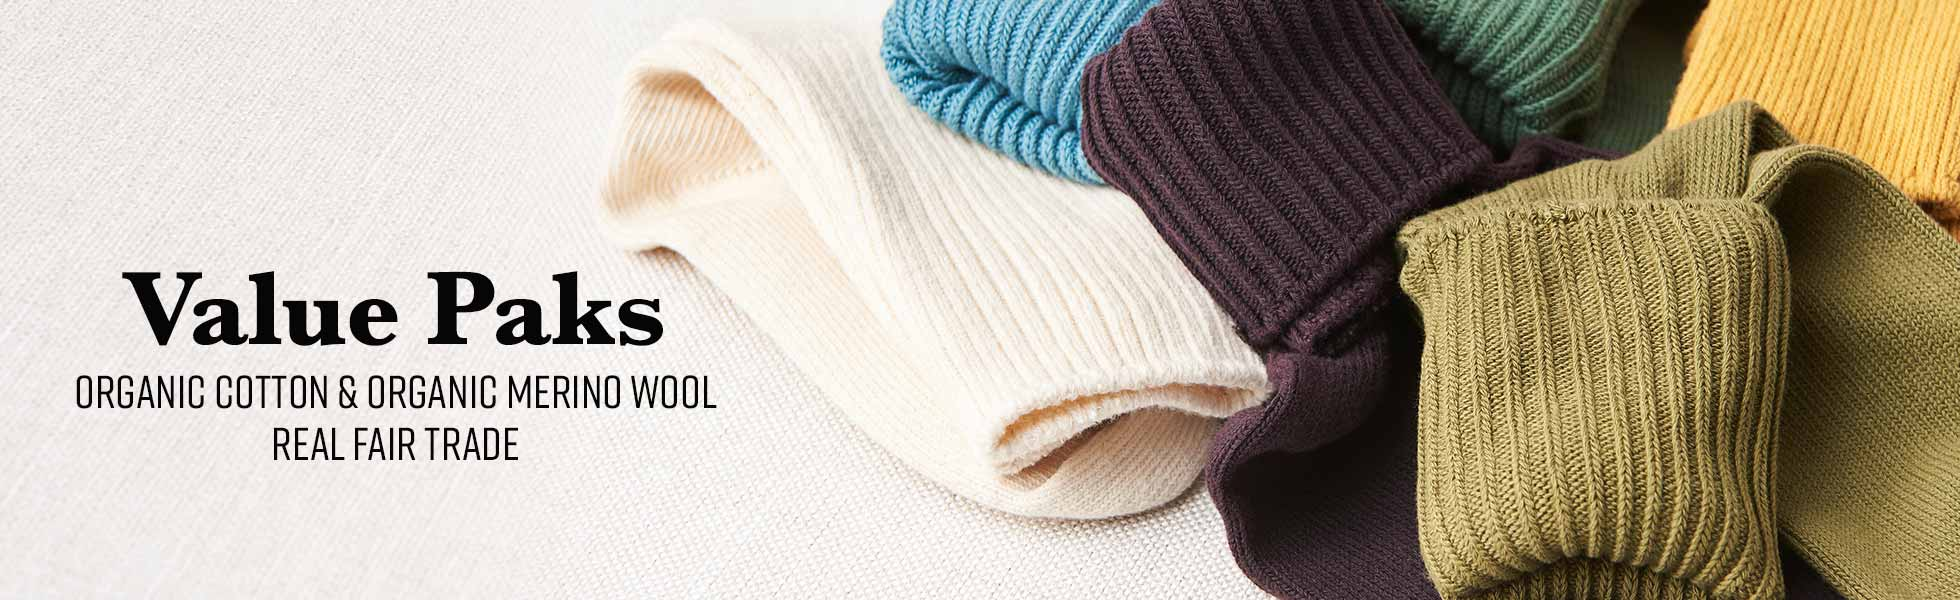 Value Paks of Organic Cotton and Organic Merino Wool Socks